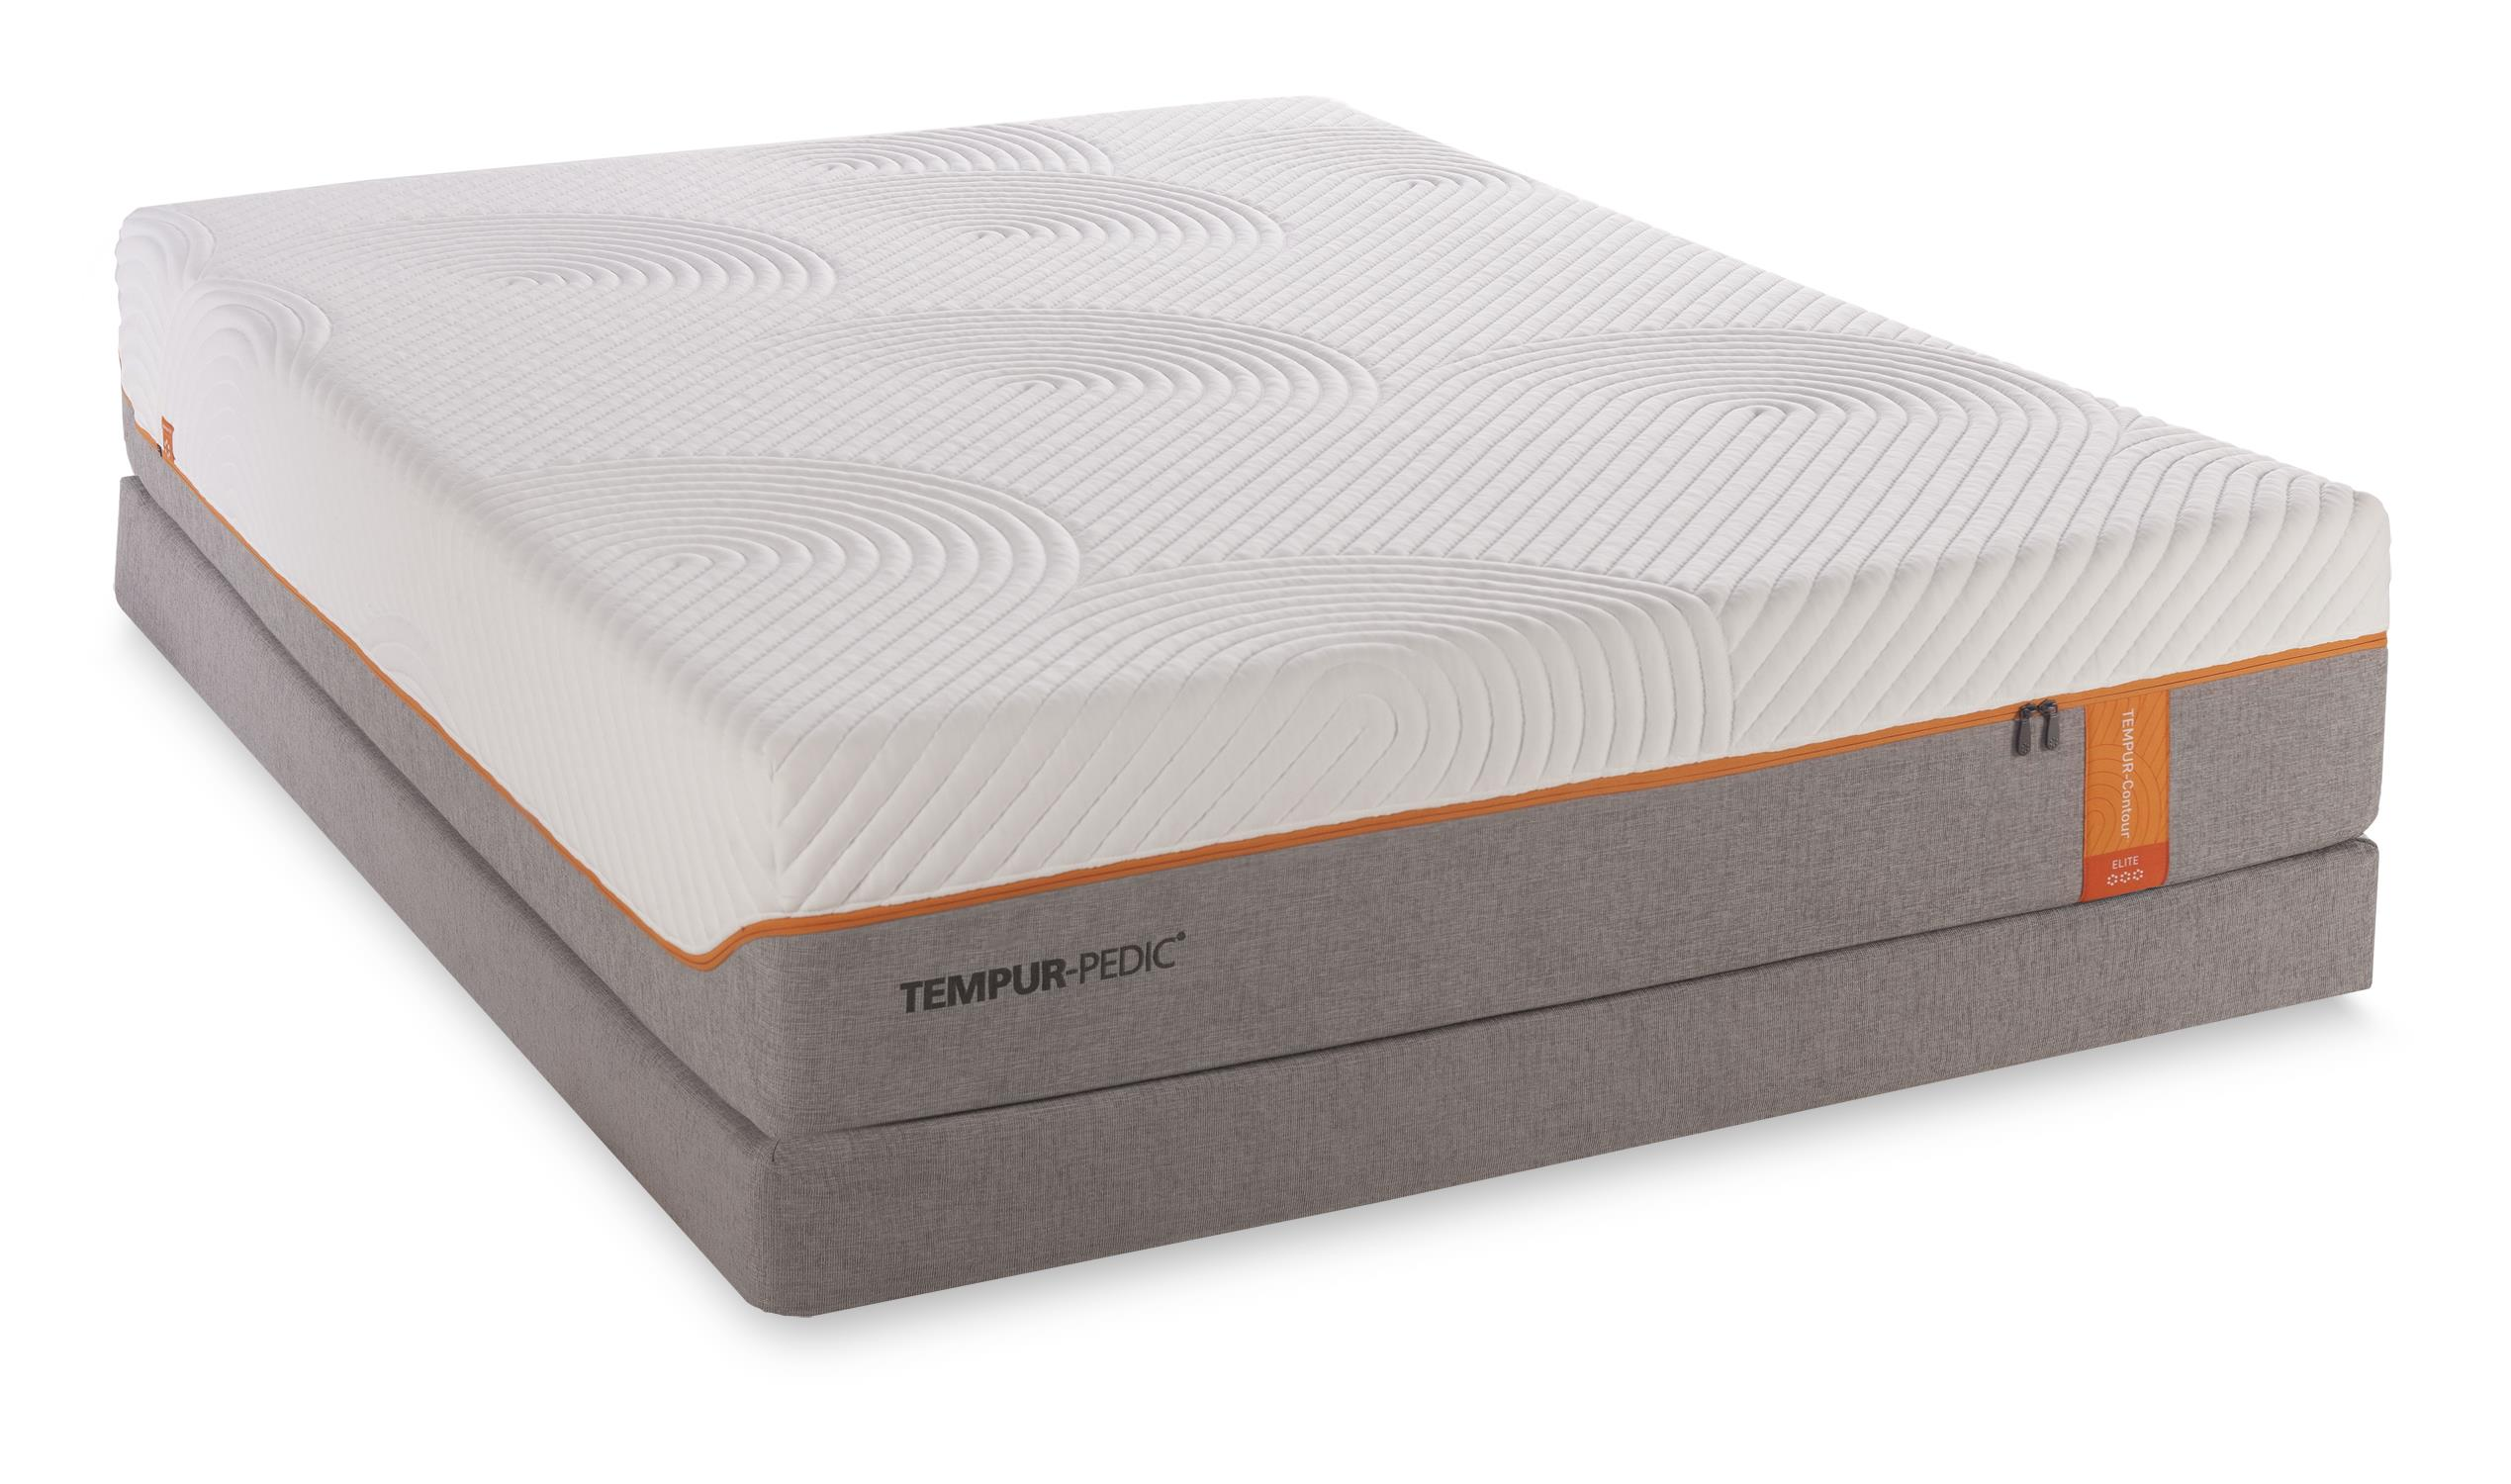 Tempur-Pedic® TEMPUR-Contour Elite Cal King Medium-Firm Mattress Set - Item Number: 10257180+2x21510190